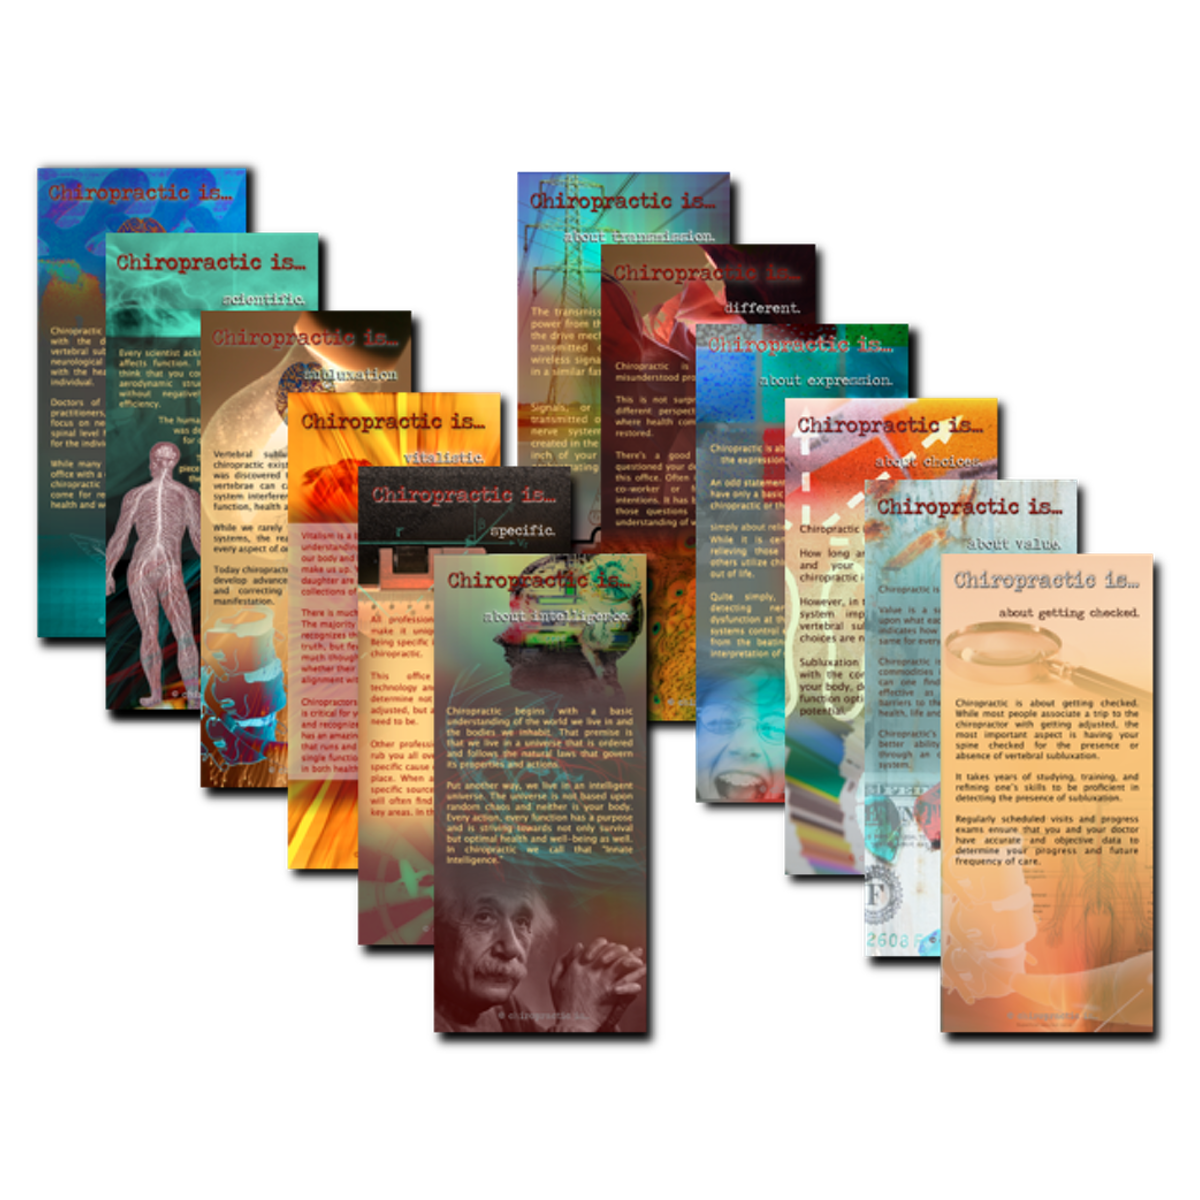 Chiropractic brochures patient education